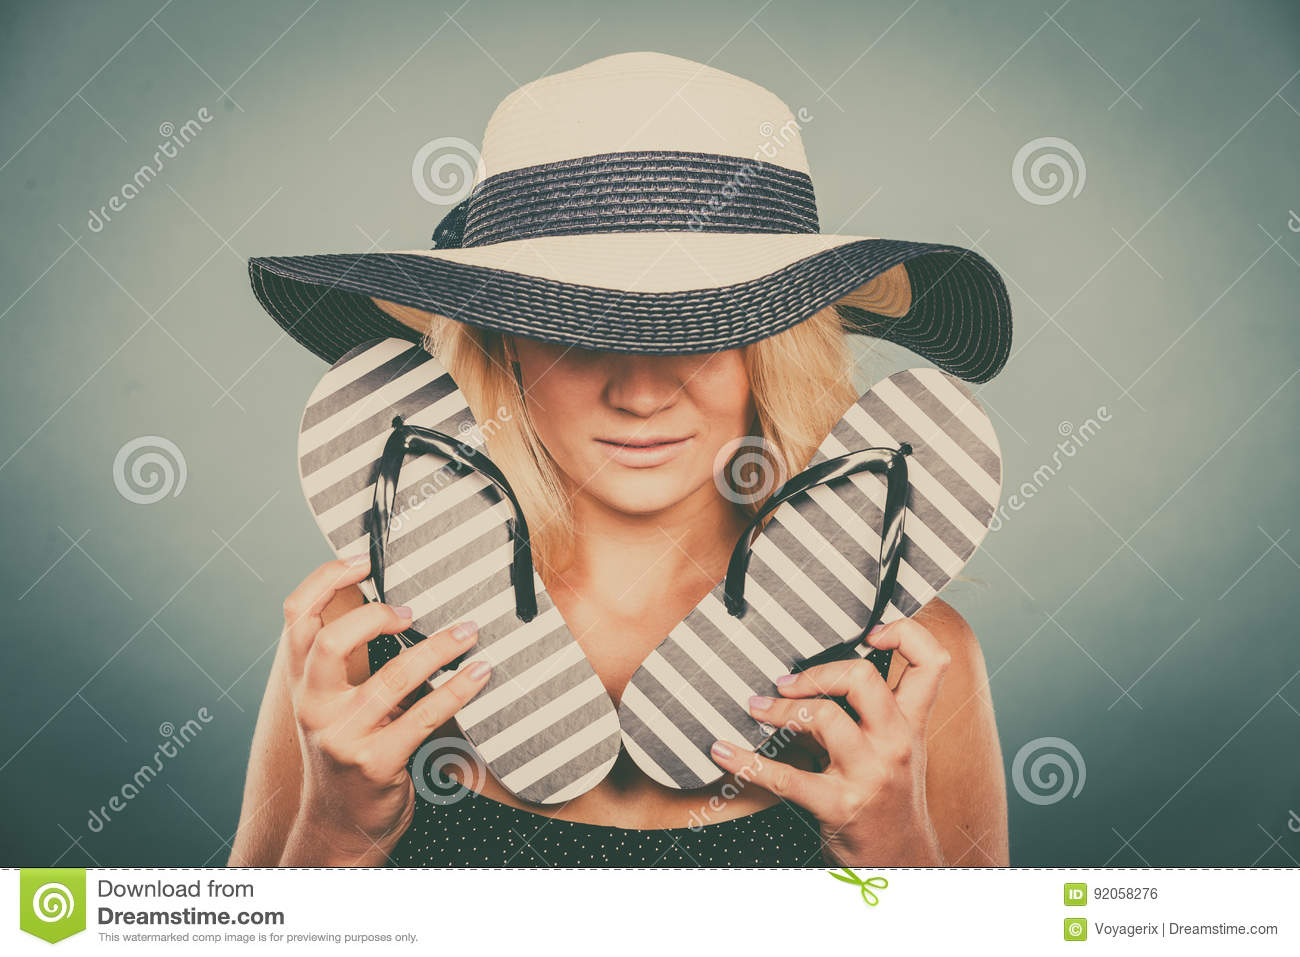 51be40e642bbd2 Summer trendy fashionable outfit ideas concept. Blonde unrecognizable  mysterious woman wearing blue dress and sun hat holding flip flops.